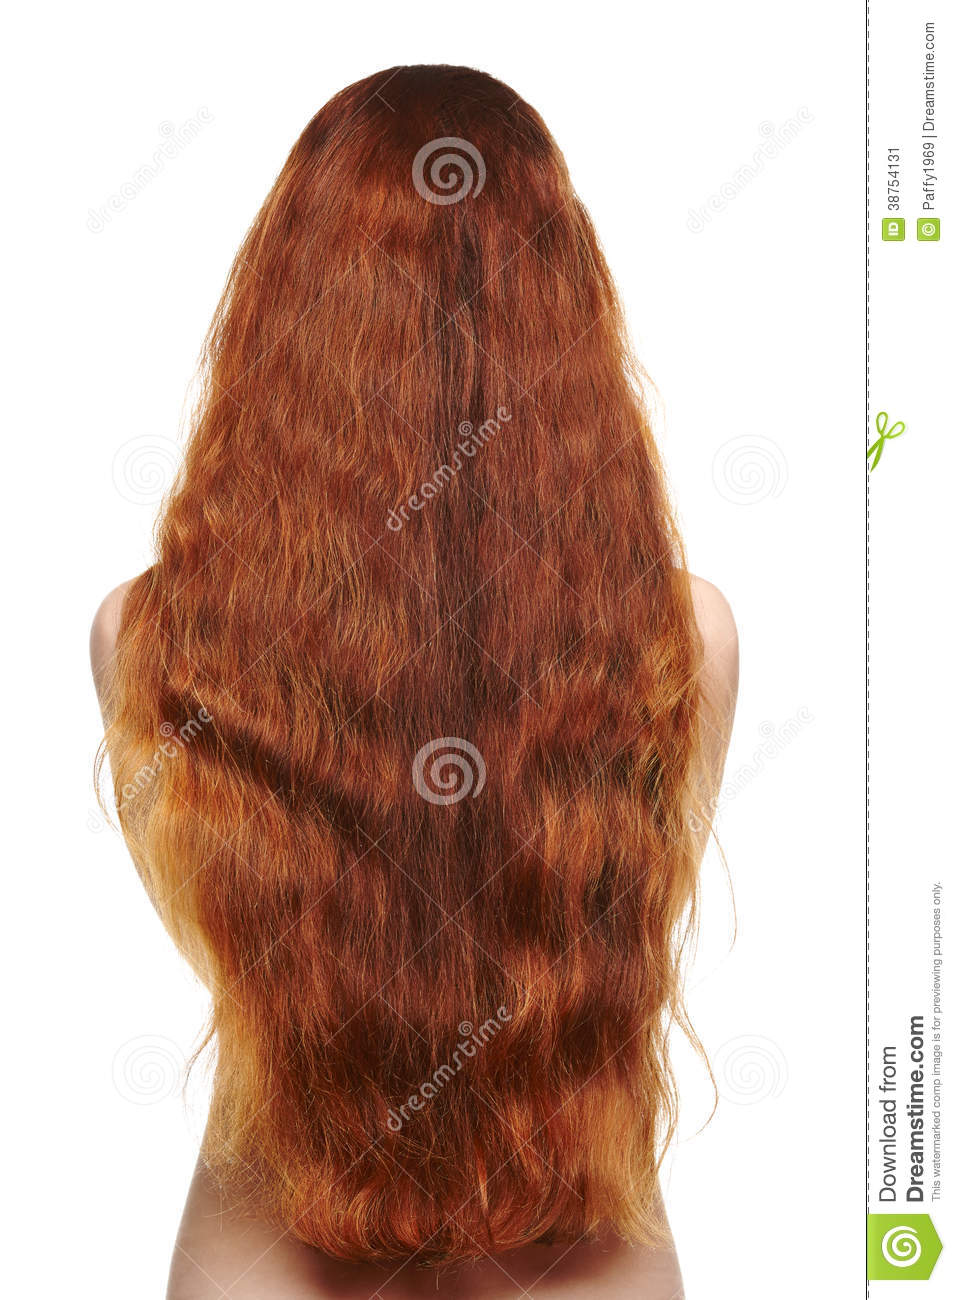 Beautiful Long Red Hair Woman Stock Image - Image 38754131-2927